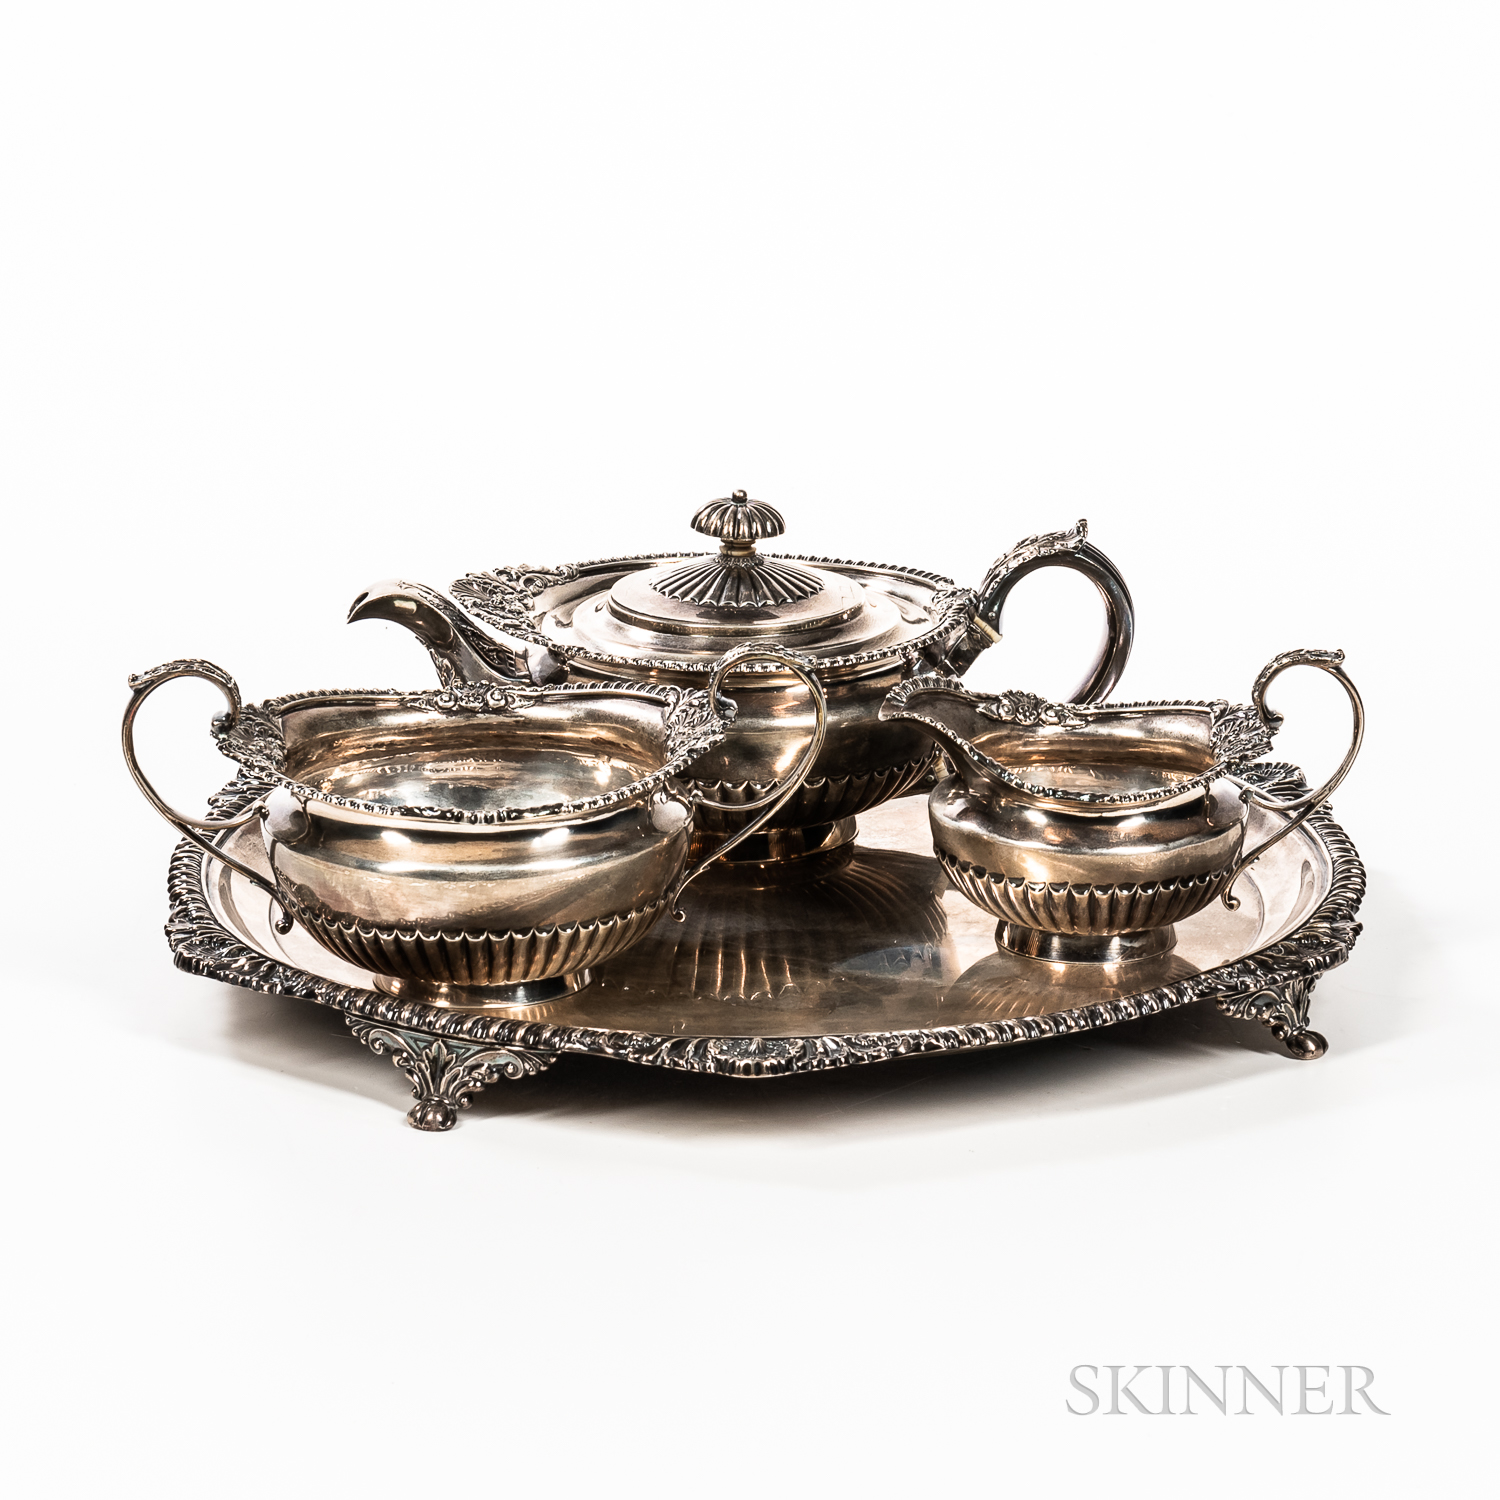 English Three-piece Sterling Silver Tea Set with Tray